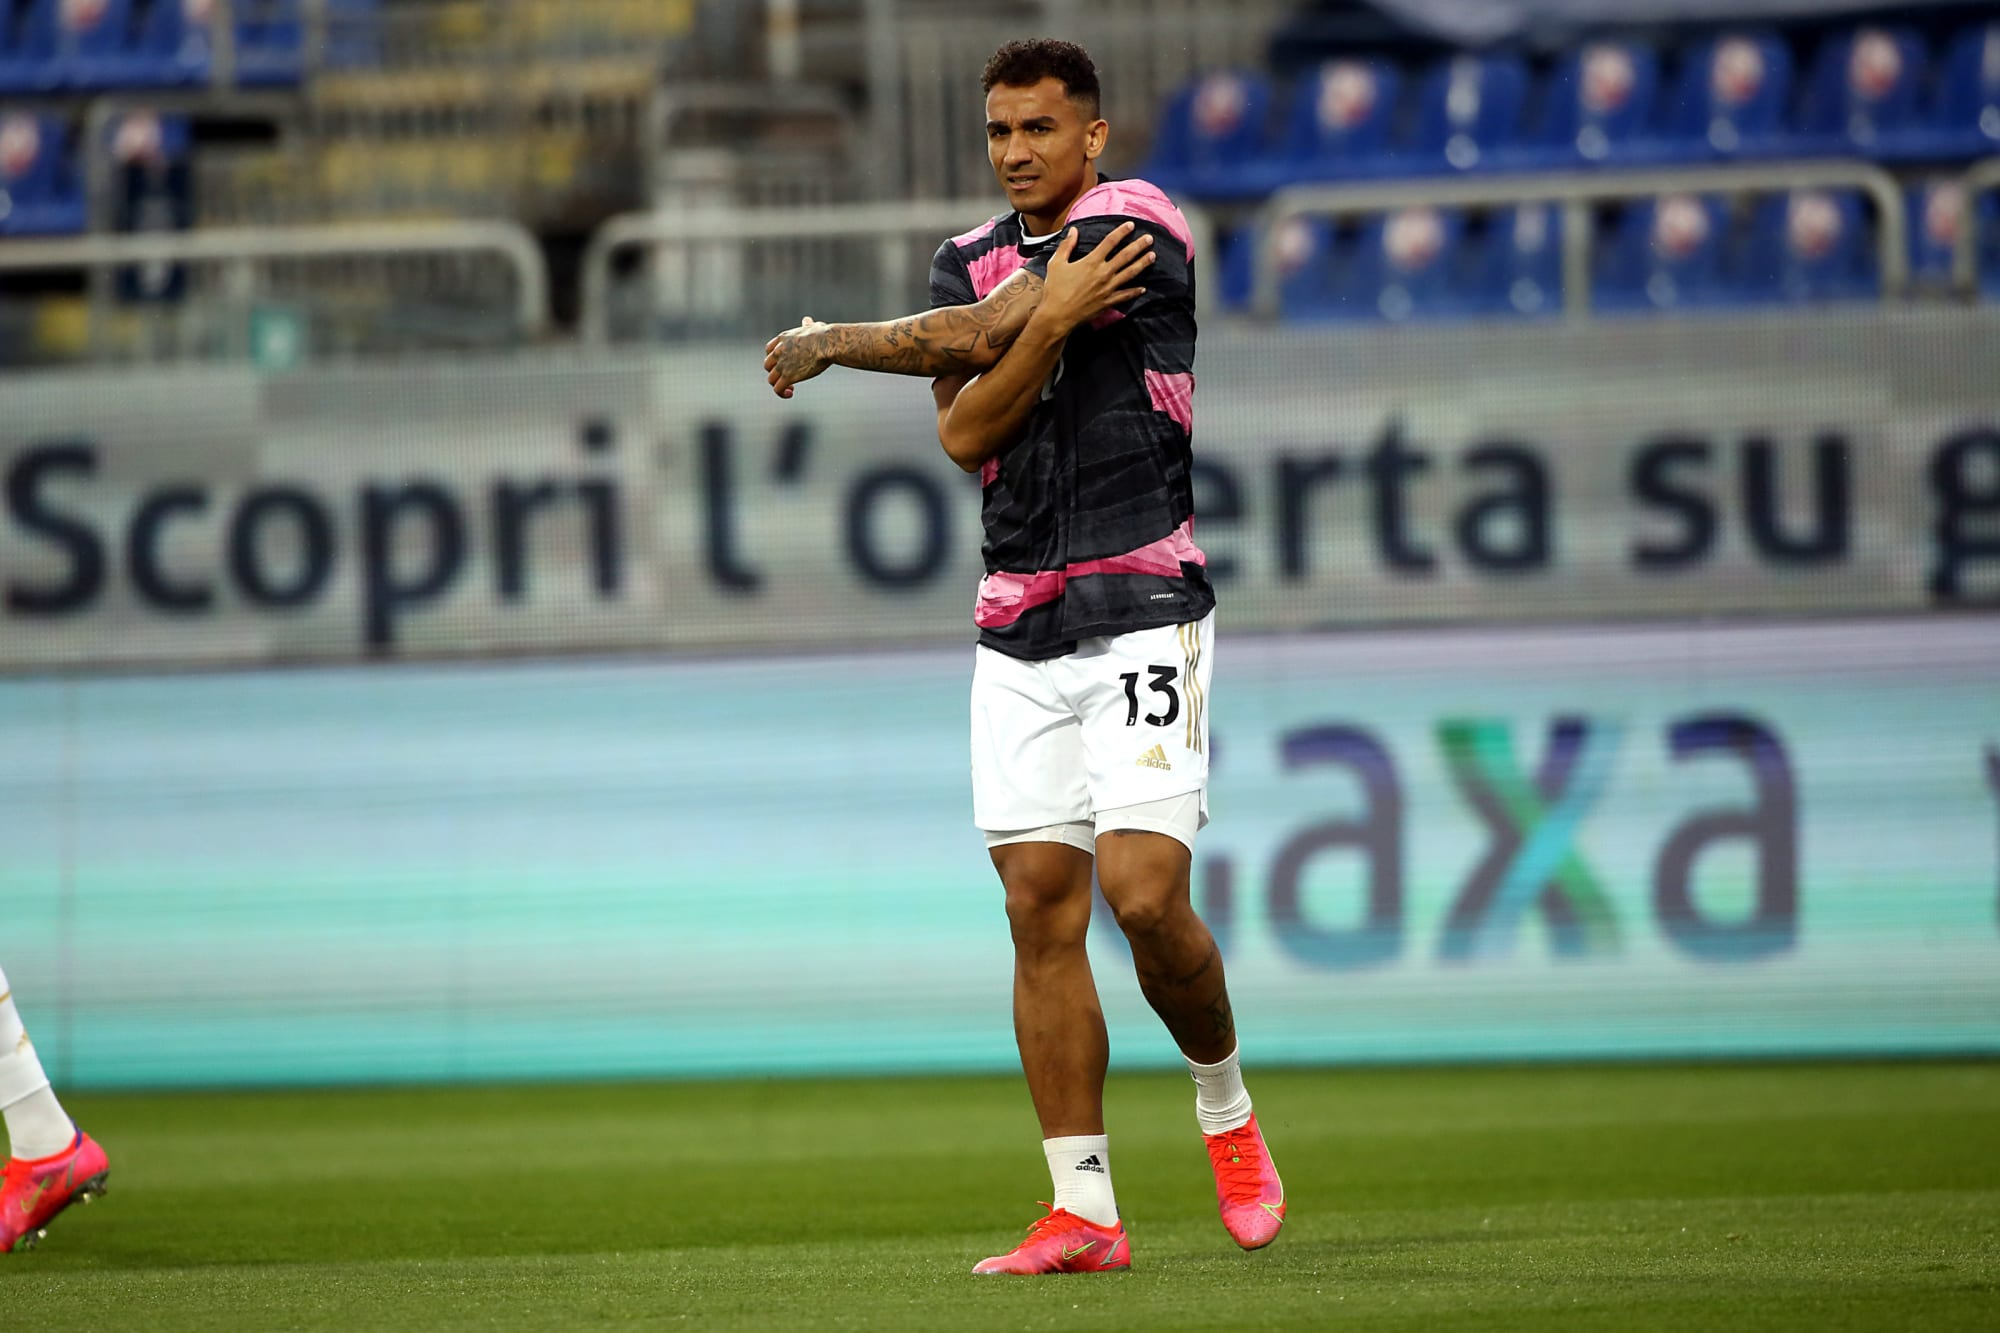 Juventus are right to value Danilo so highly